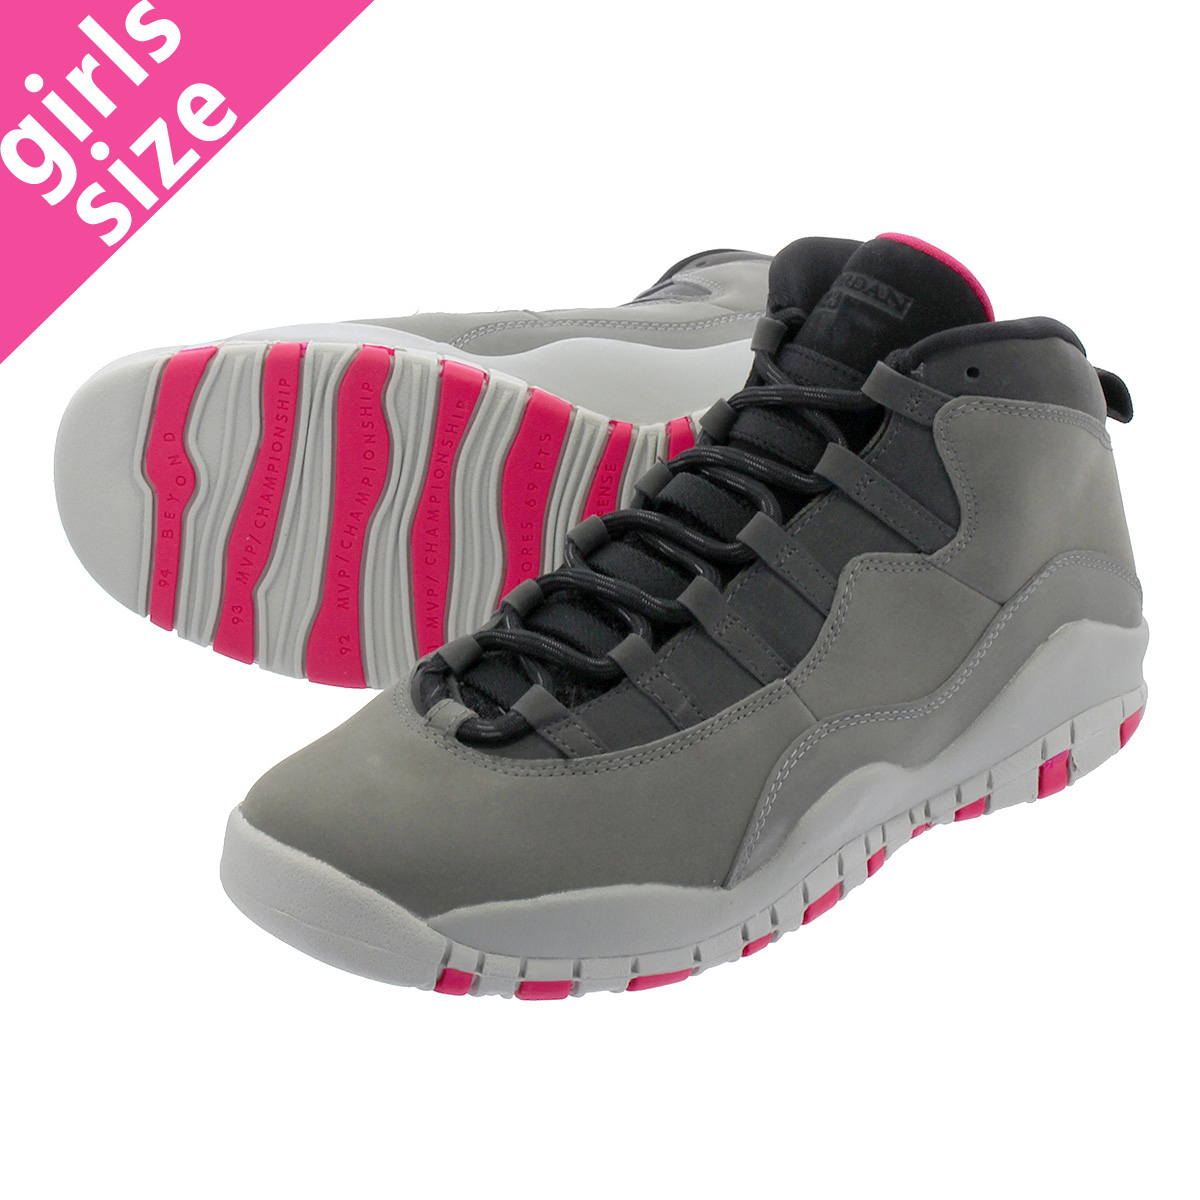 LOWTEX PLUS  NIKE AIR JORDAN 10 RETRO GG Nike Air Jordan 10 nostalgic GG DARK  SMOKE GREY RUSH PINK BLACK IRON GREY 487 104cc2ef9